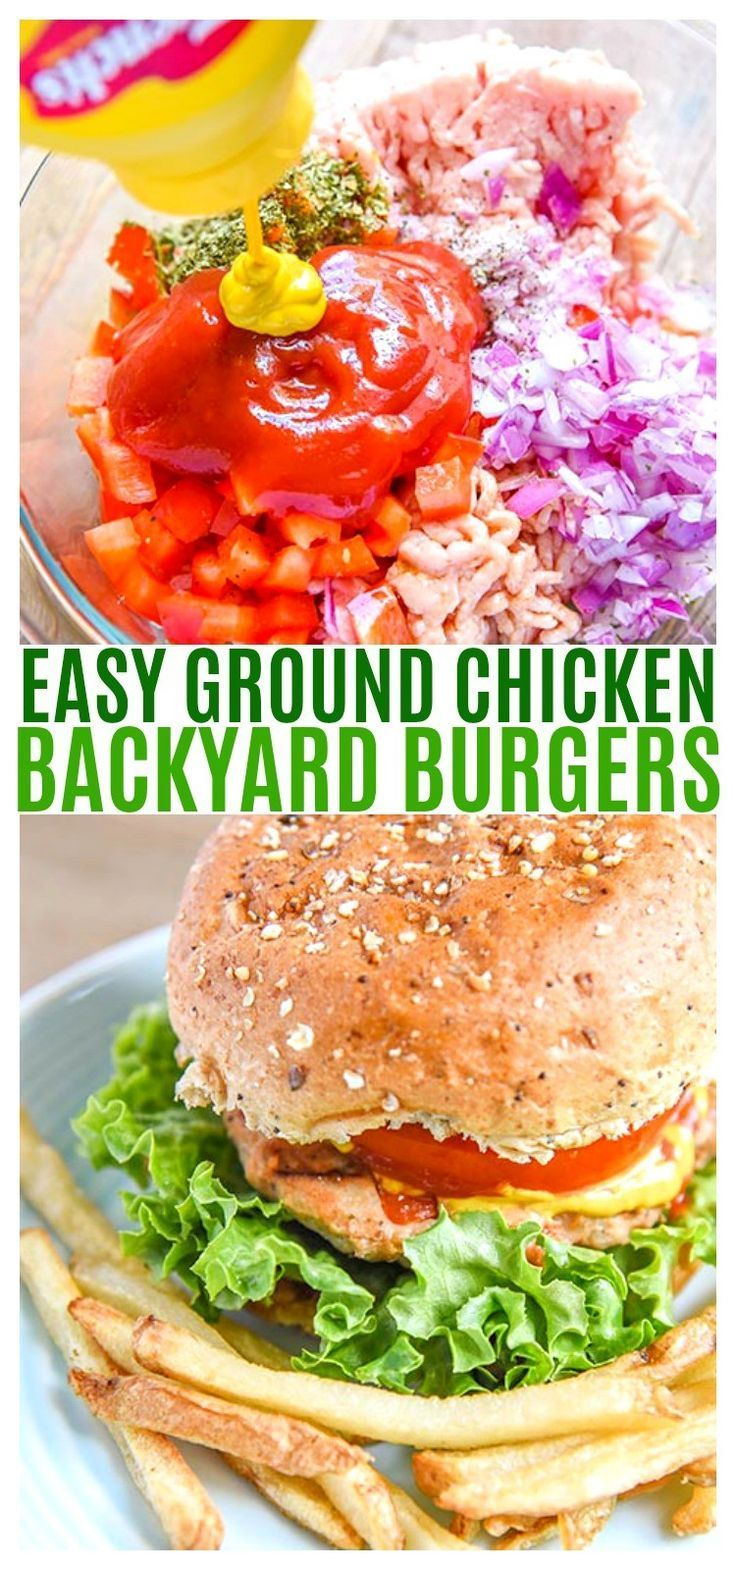 Simple backyard ground chicken burger recipe! This…